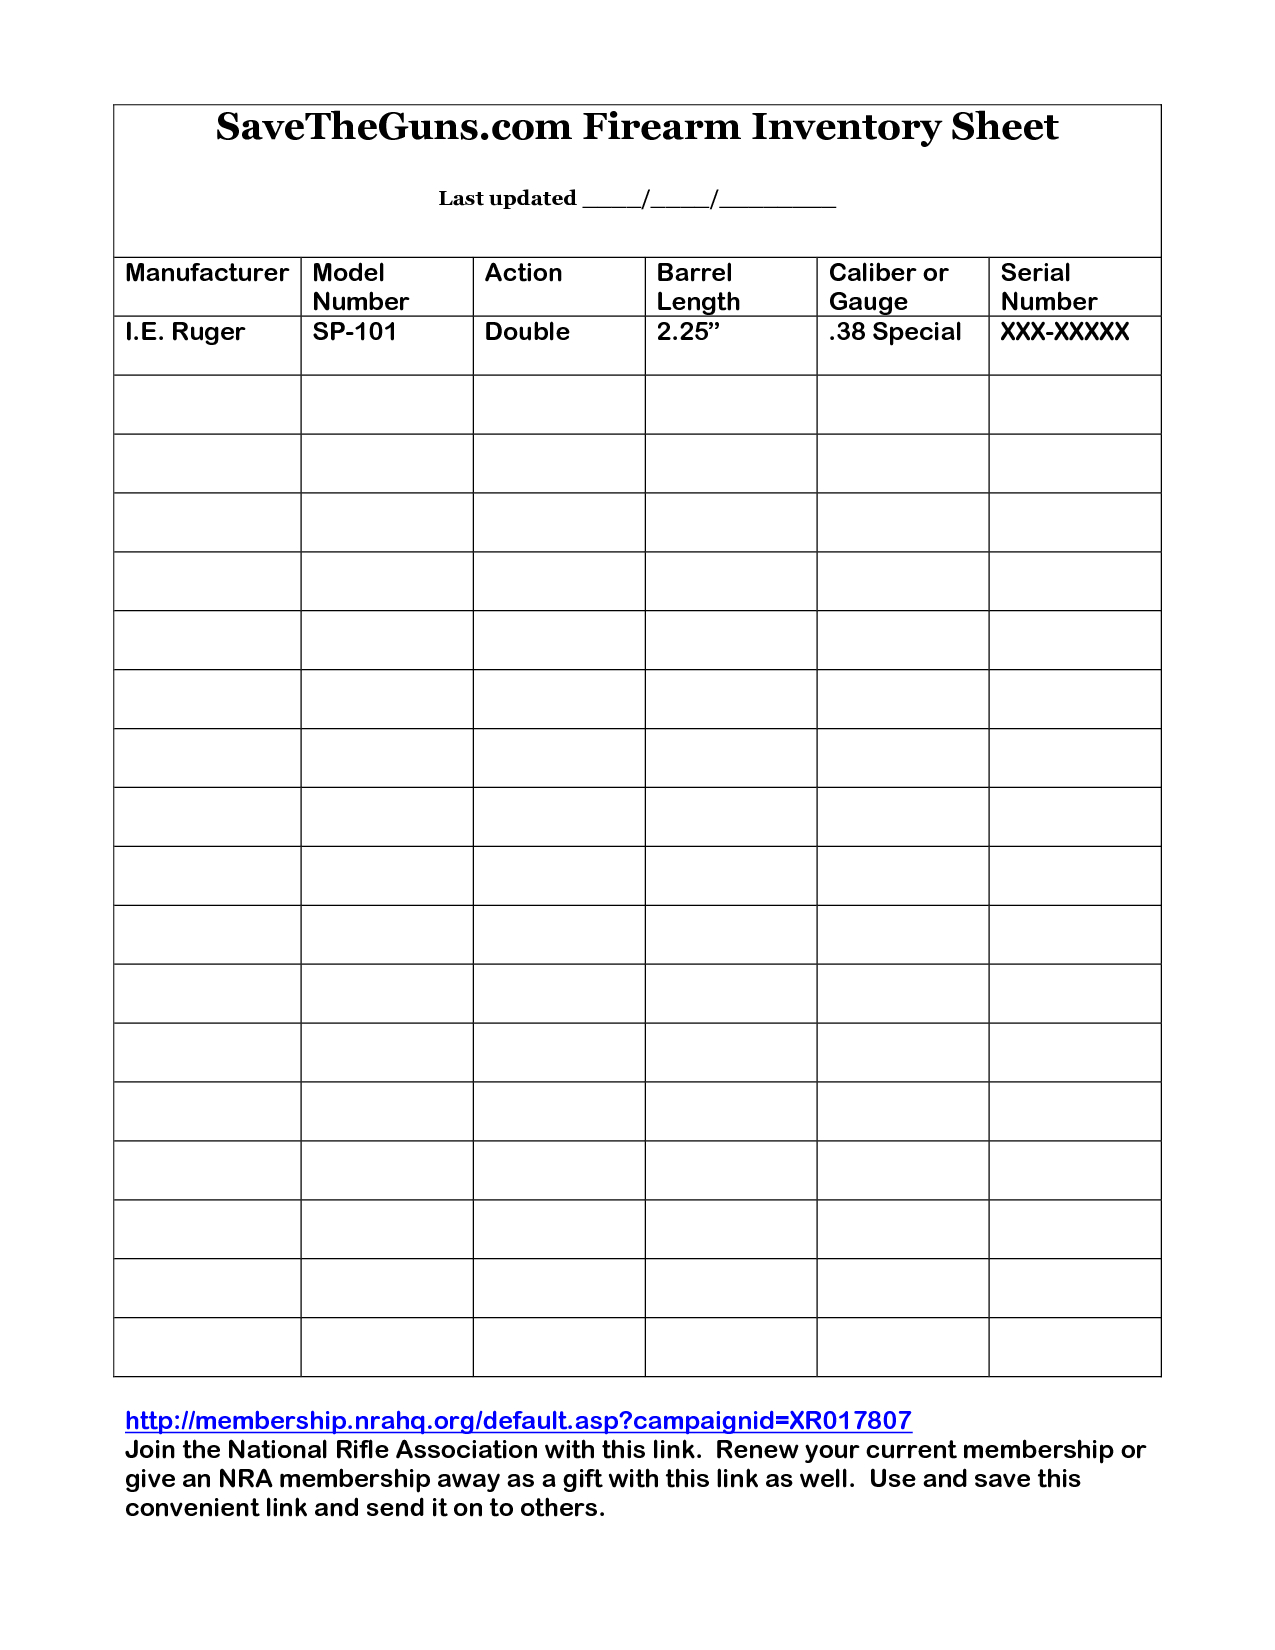 Printable Gun Inventory Form | Firearm Inventory Sheet By ... Also Football Equipment Inventory Spreadsheet